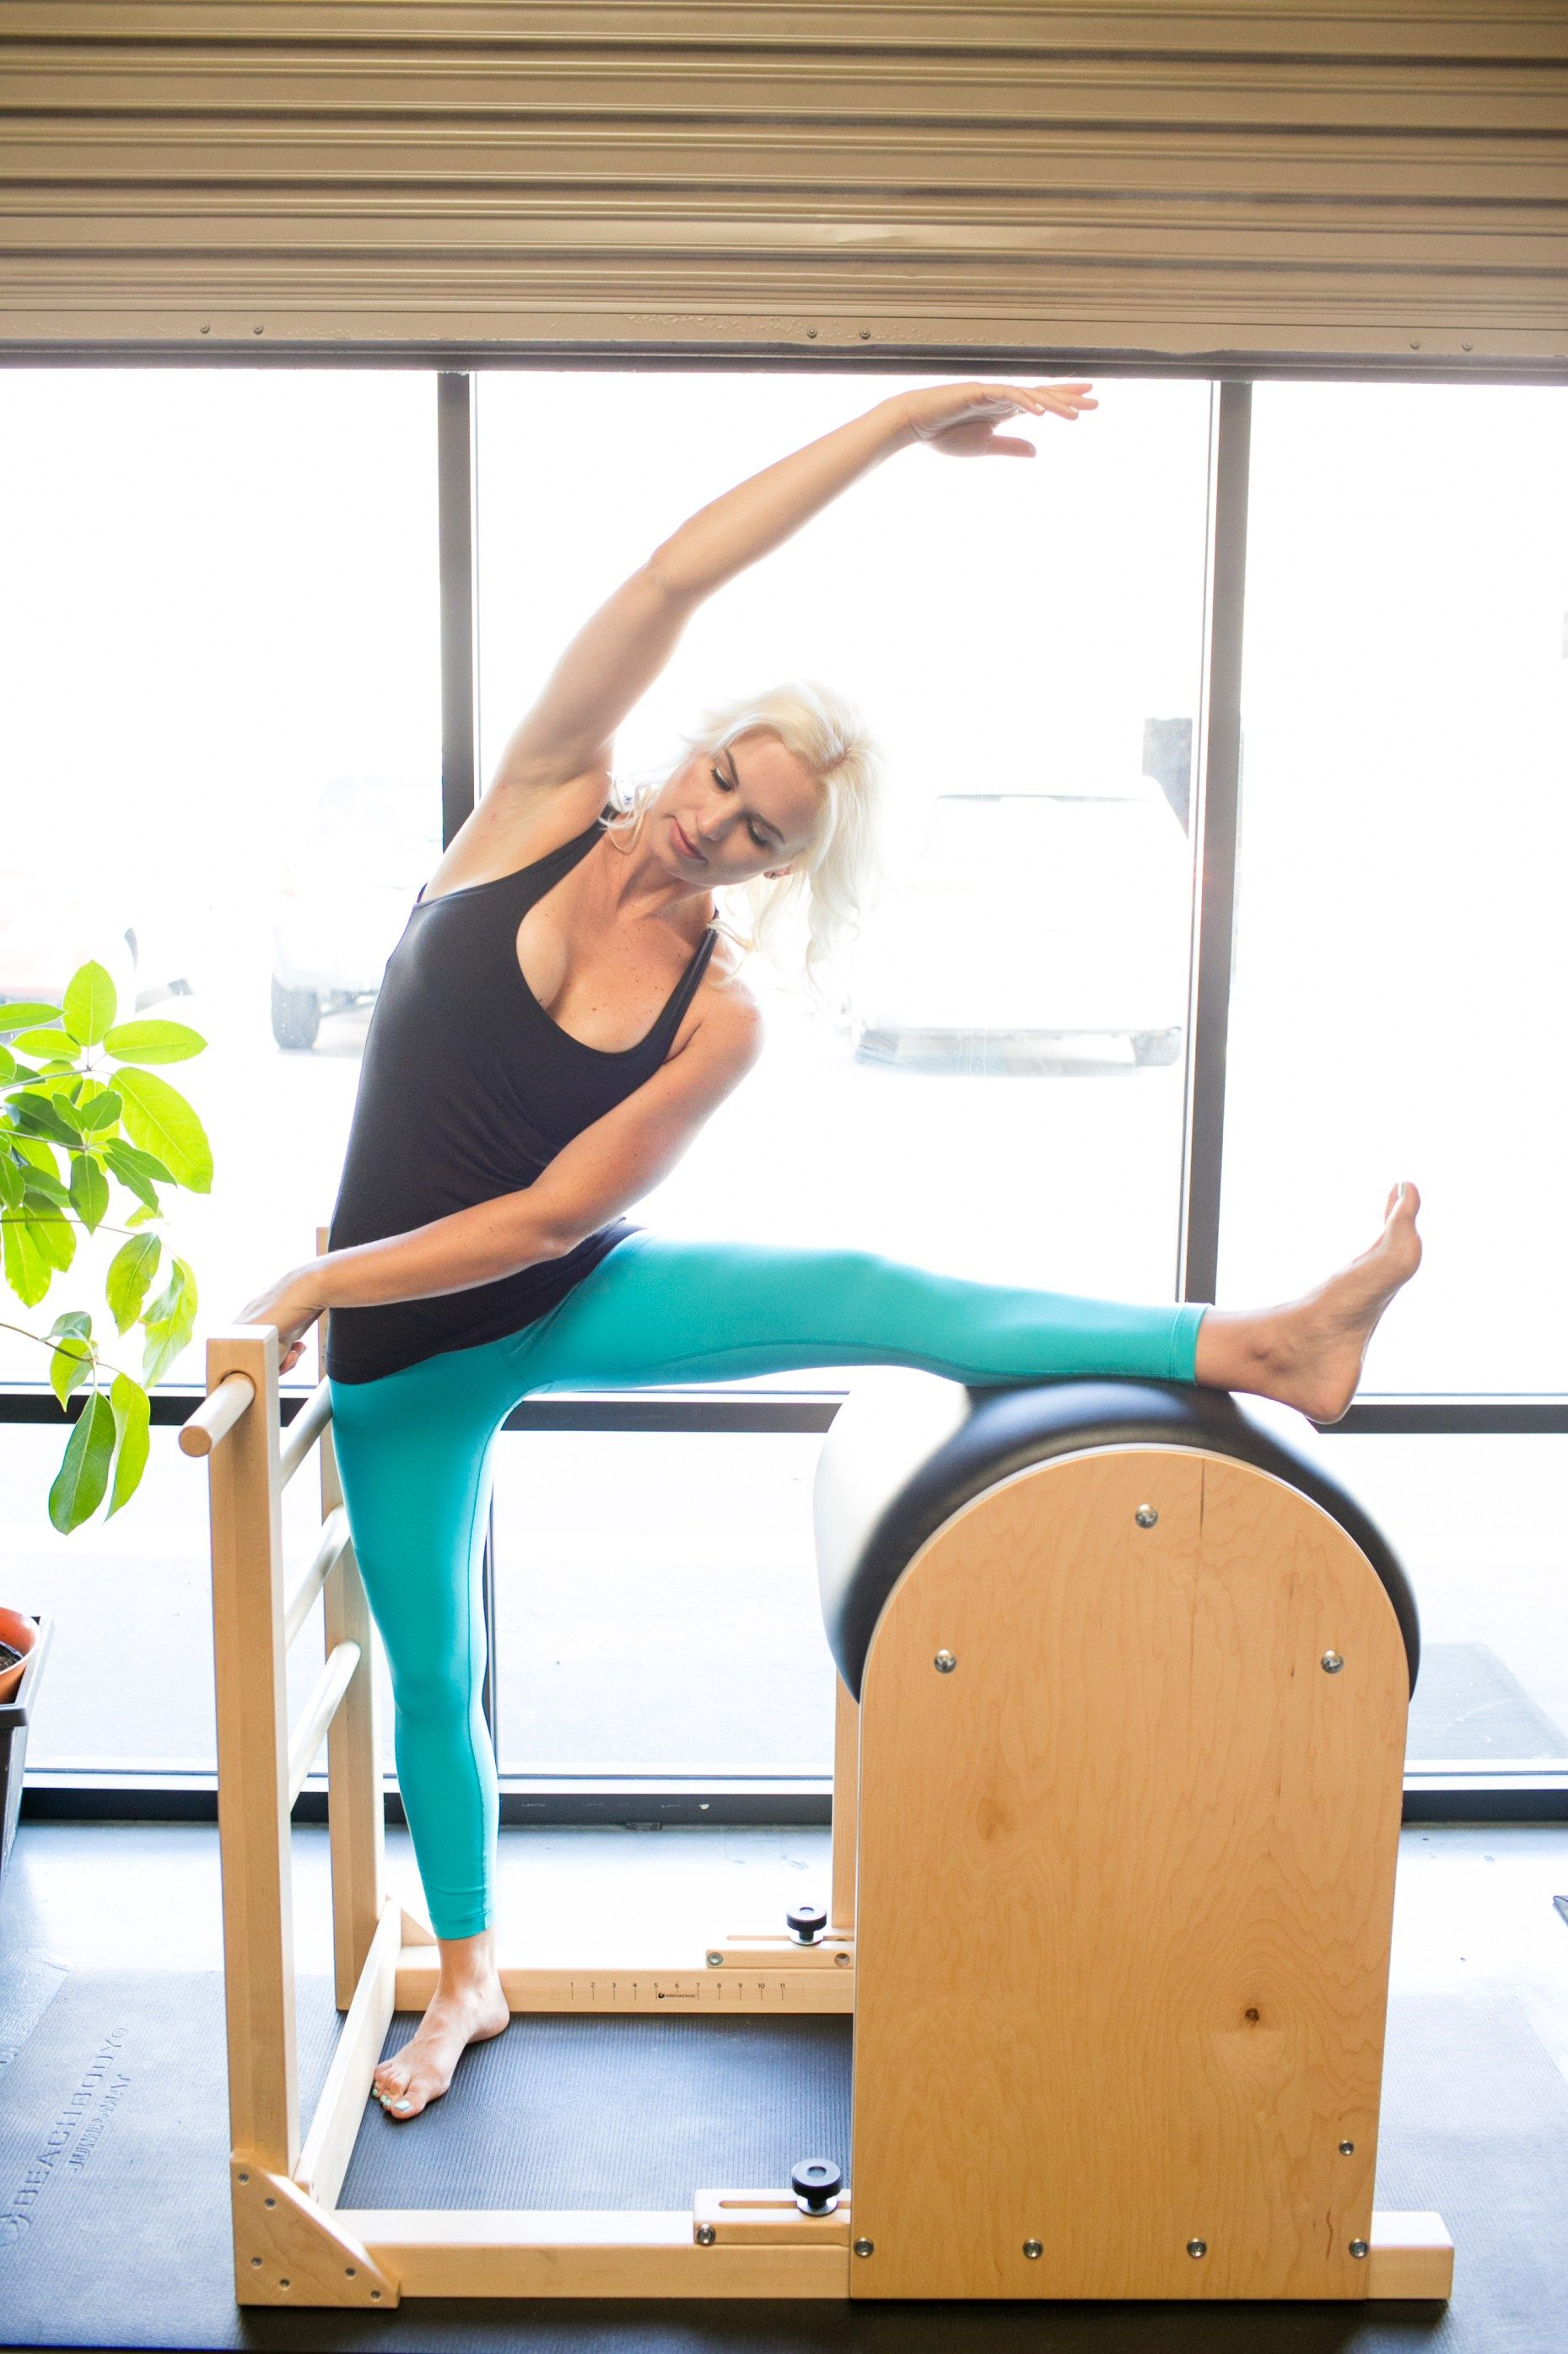 Maximize Your Stretching With These Super Hot Pilates Yoga Moves Pilates Hot Pilates Yoga Pilates